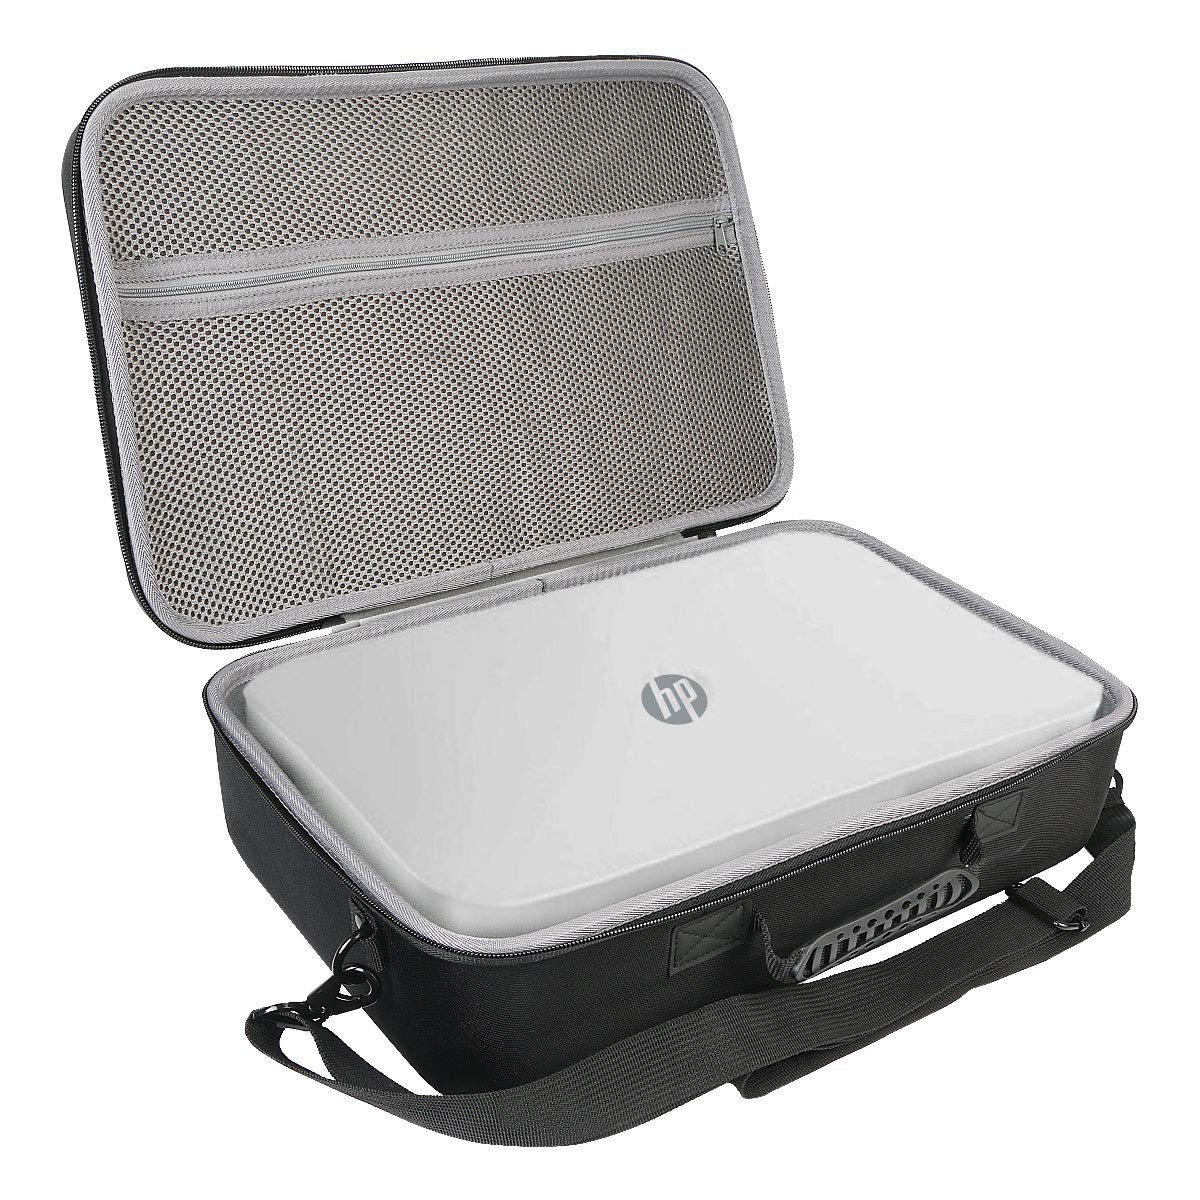 co2crea Hard Travel Case for HP Tango Smart Home Printer 2RY54A (Can't to fit HP Tango Cover)